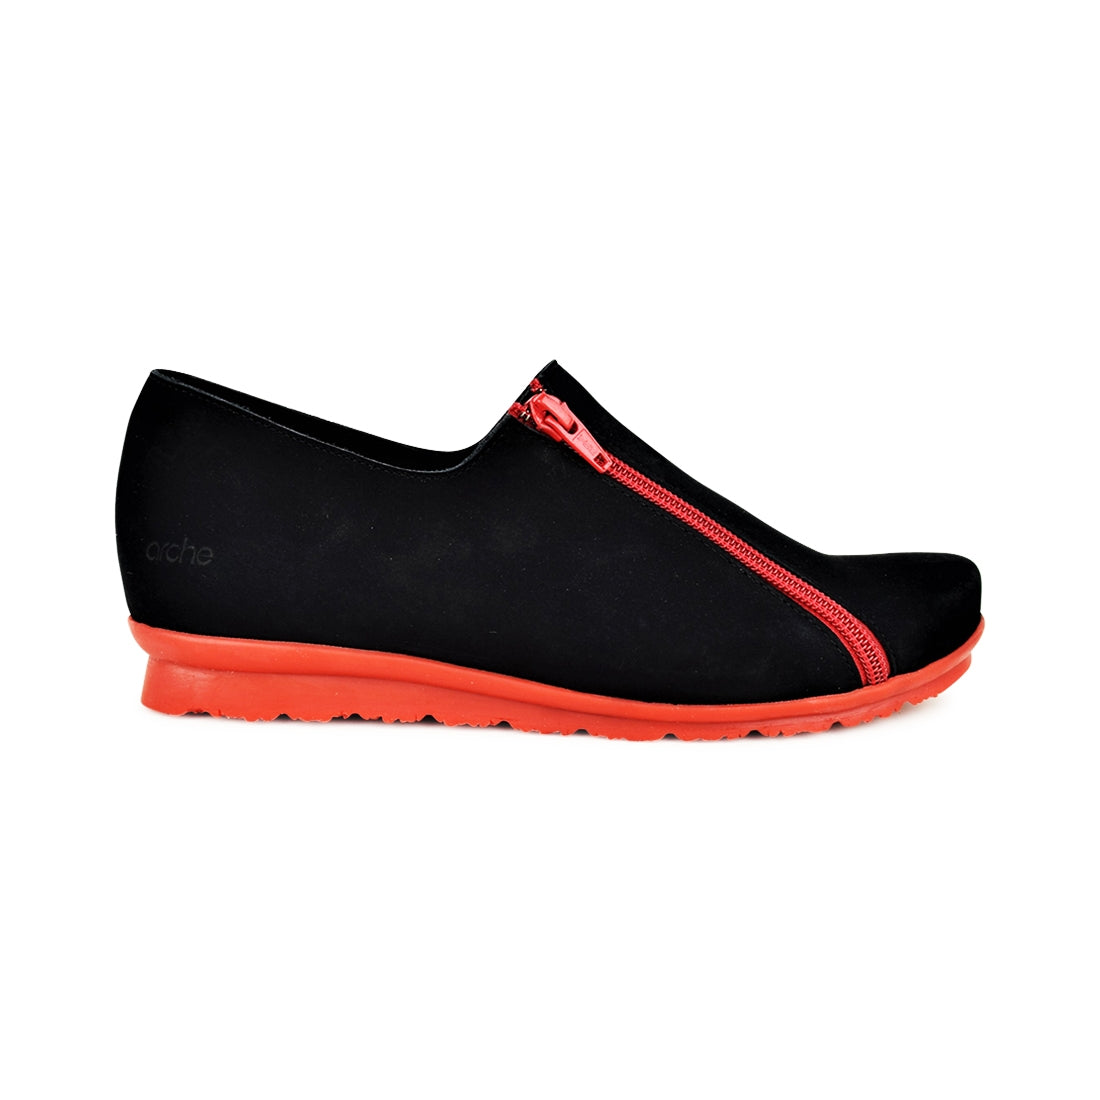 BARWAY - Arche Black Nubuck